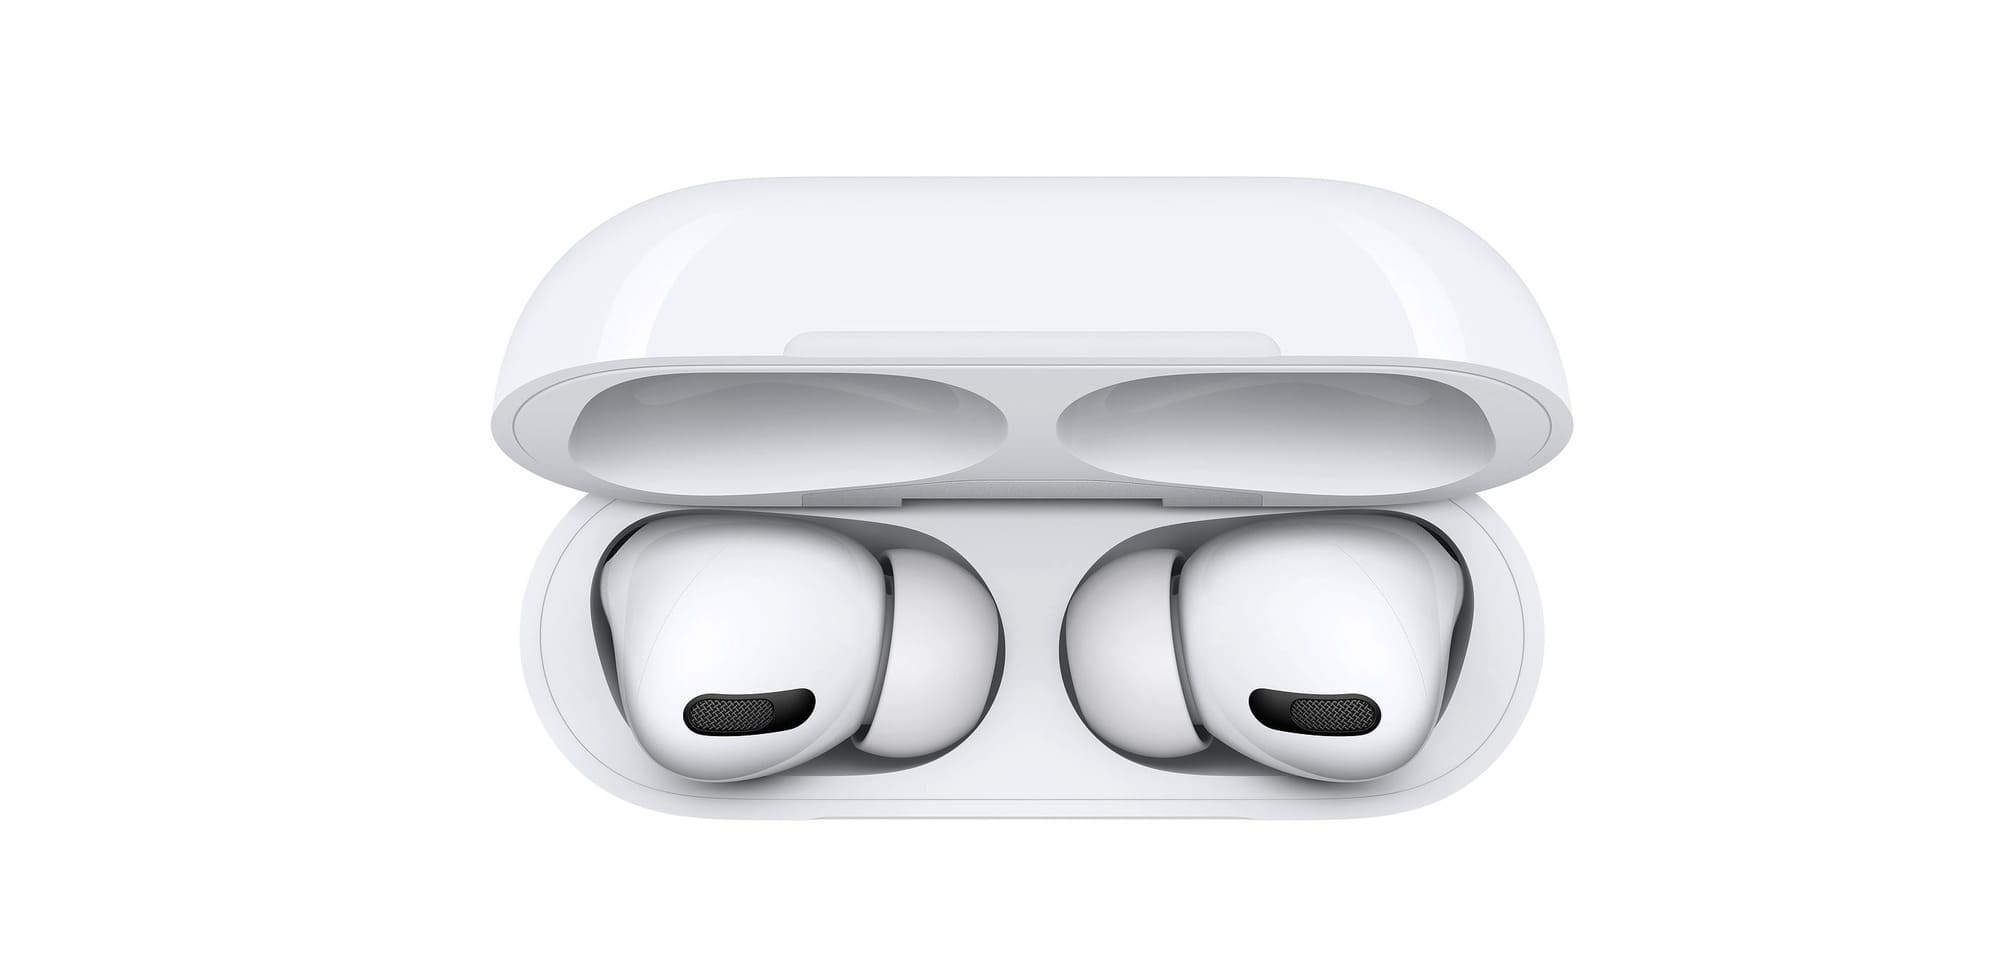 AirPods Proを上部から見た時